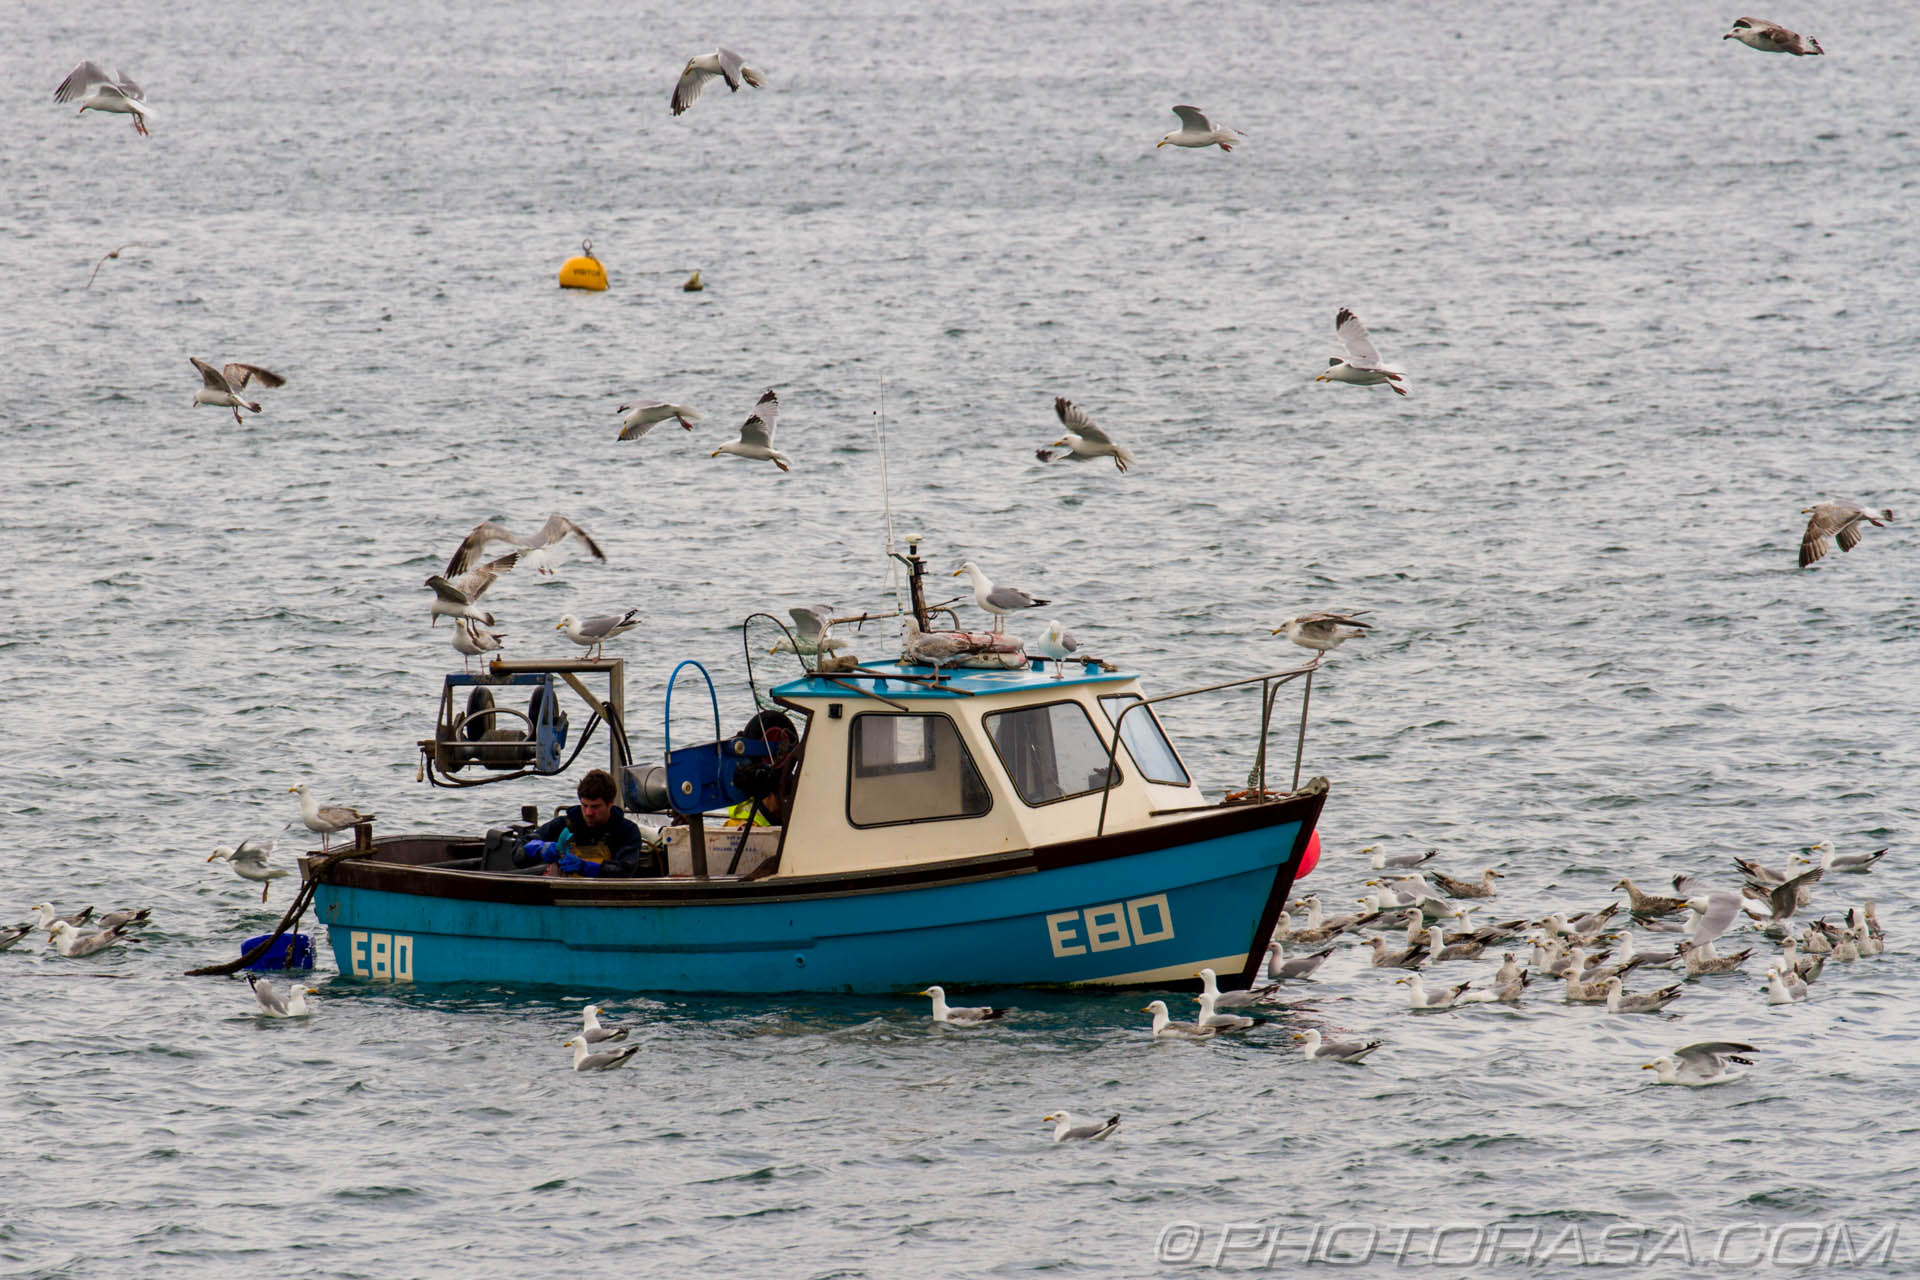 http://photorasa.com/sea-lyme-regis/fishing-boat-surrounded-by-seasgulls/